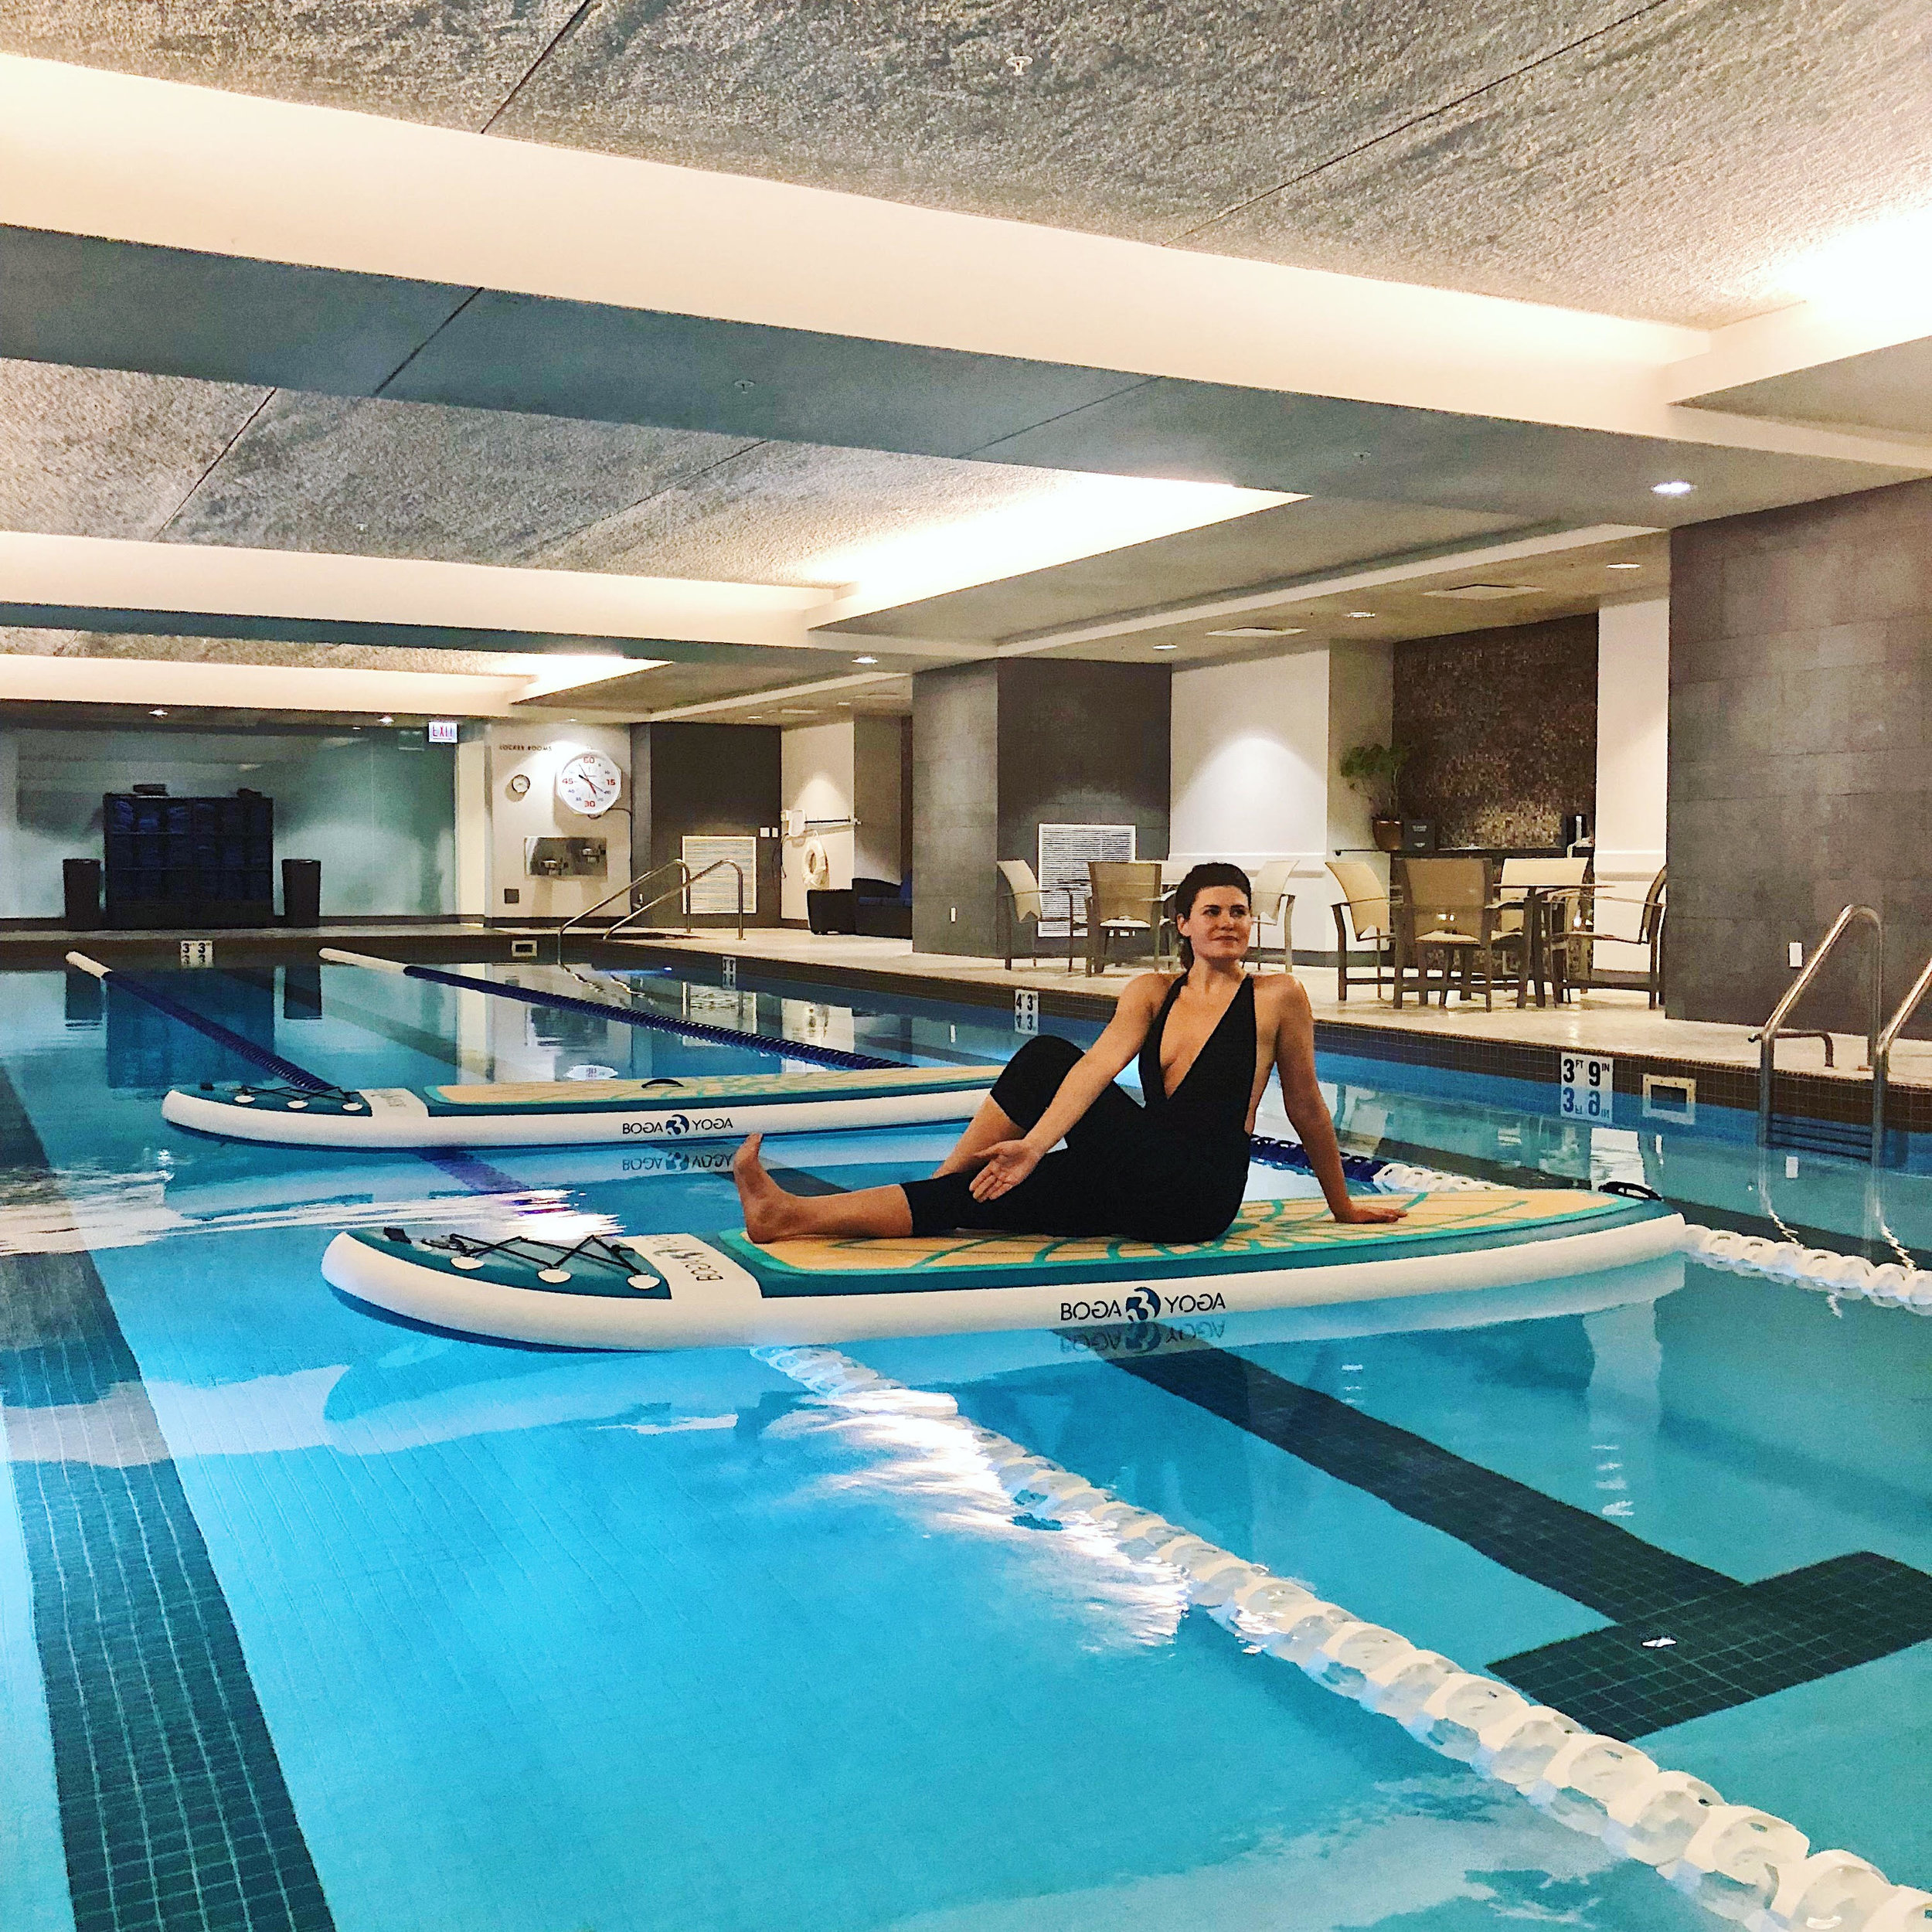 paddle board yoga  - tonight i tried something new, an indoor paddle board yoga class 🧘🏻‍♀️ thank you @koyoga_paddle for an amazing class 🙌🏻 catch her in the pool  at trumpchicago -xoxojackie